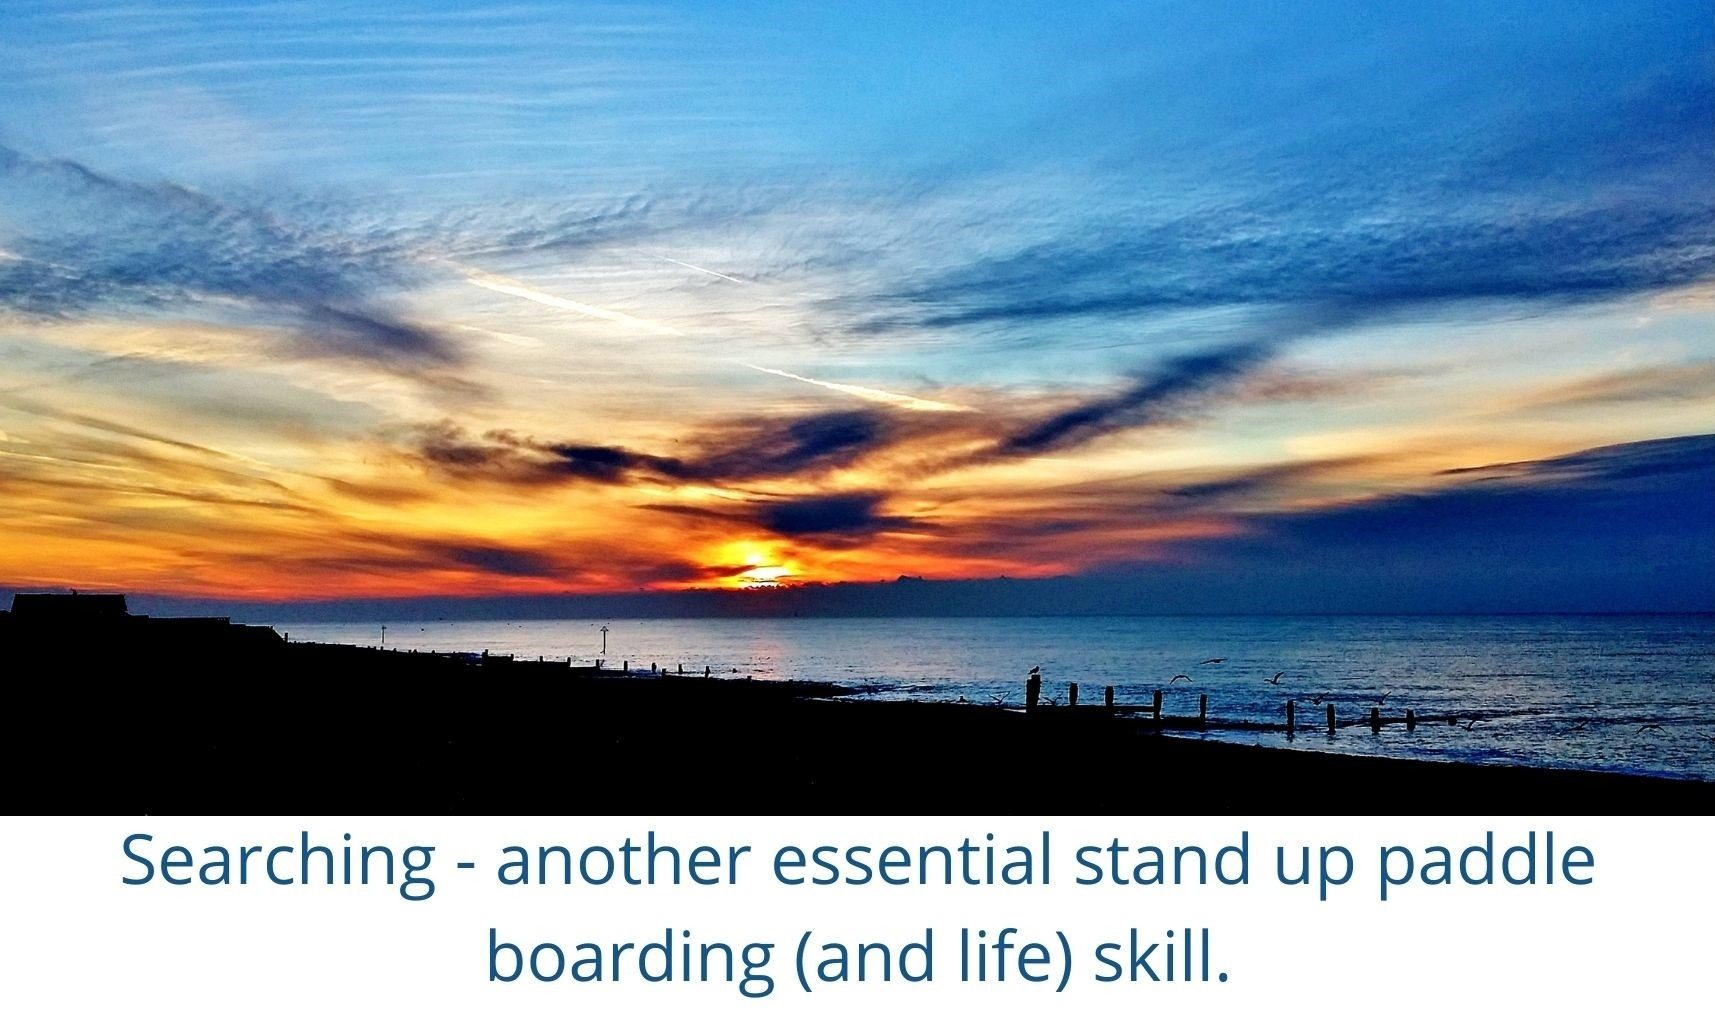 Searching – another essential stand up paddle boarding (and life) skill.